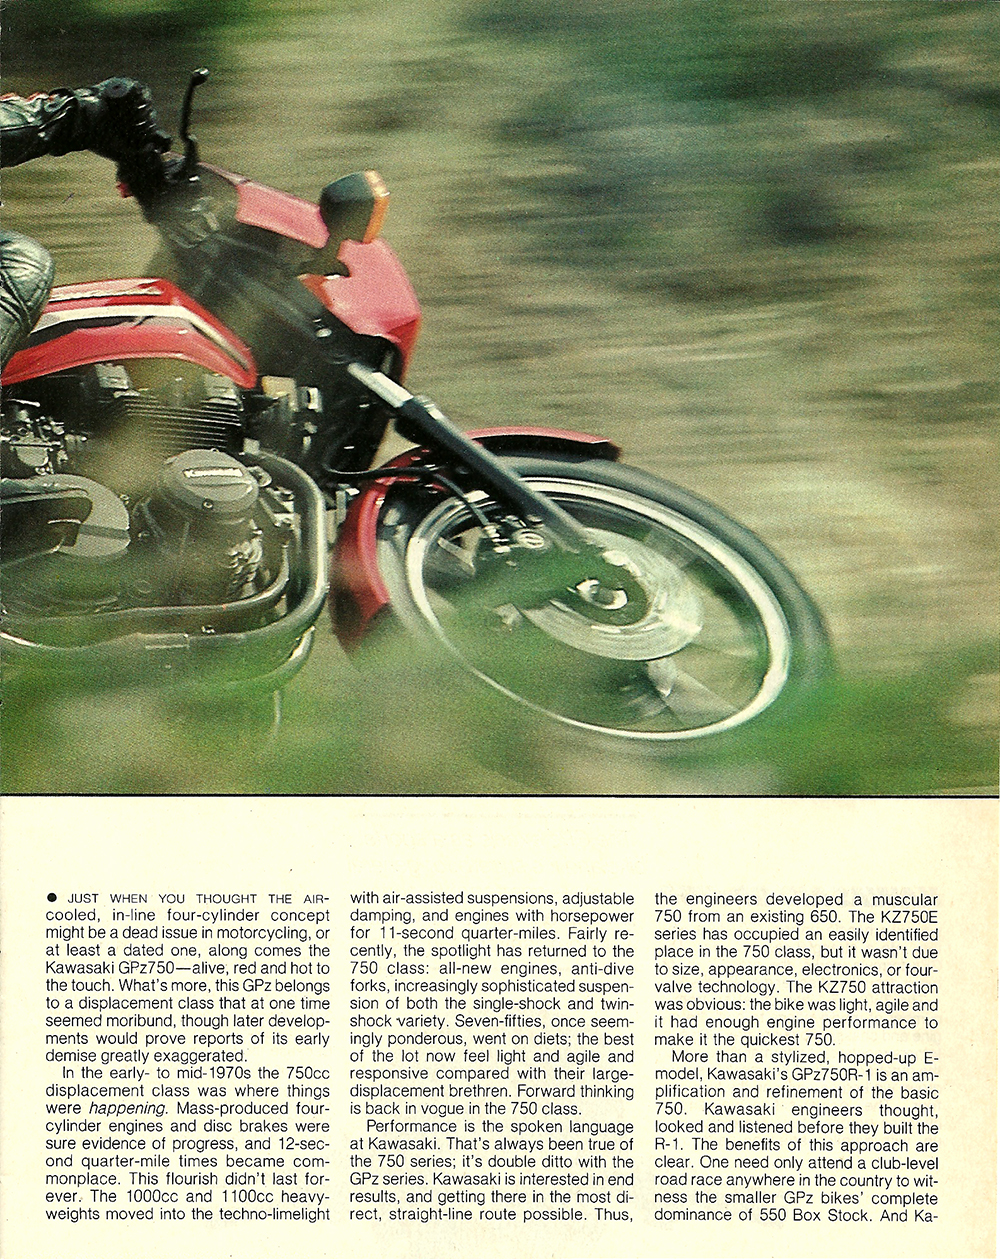 1982 Kawasaki Gpz750 road test 02.jpg